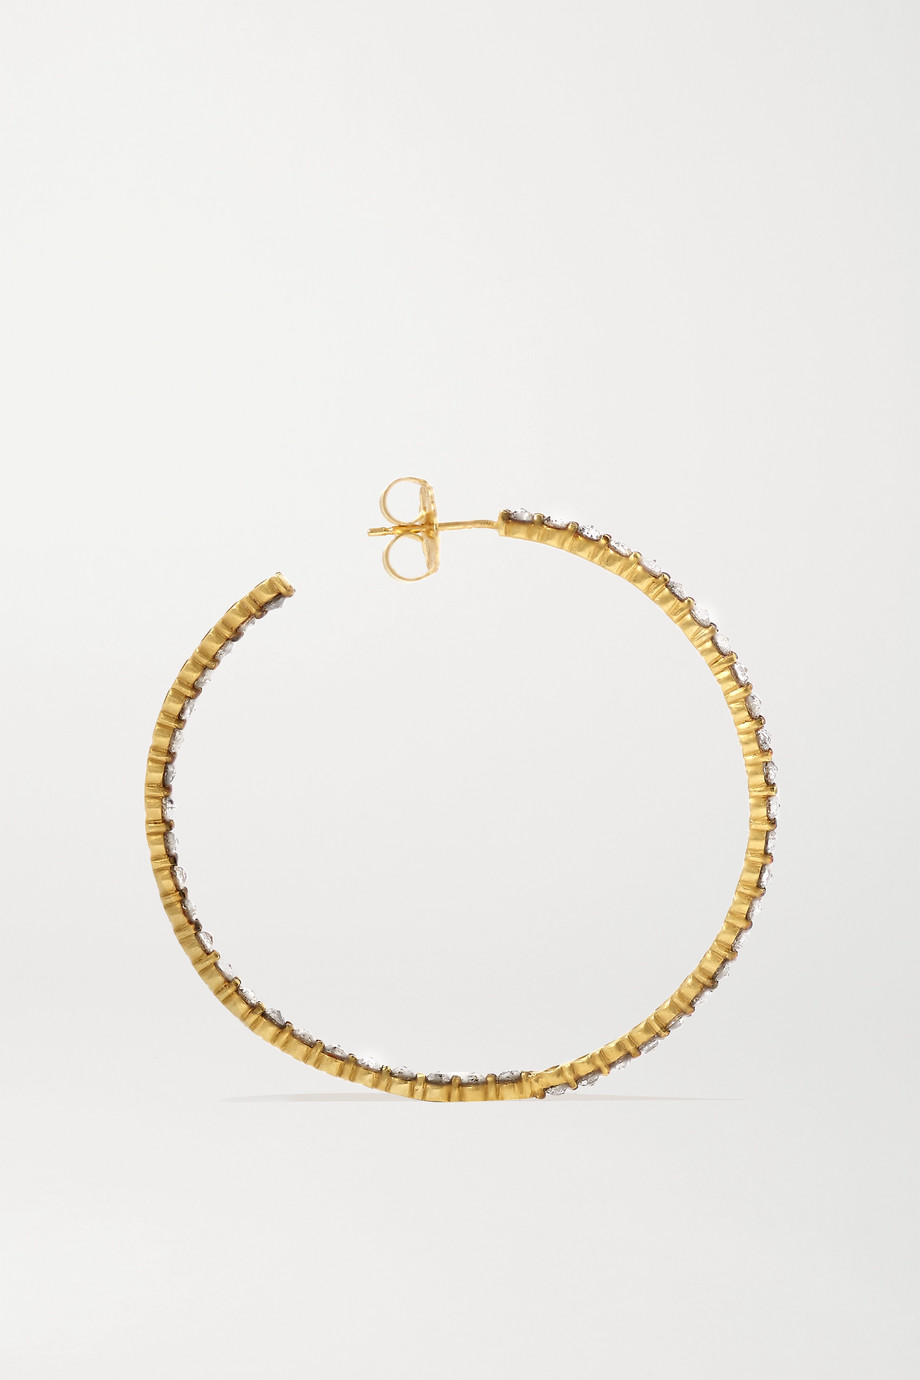 Sylva & Cie 18-karat gold multi-stone hoop earrings